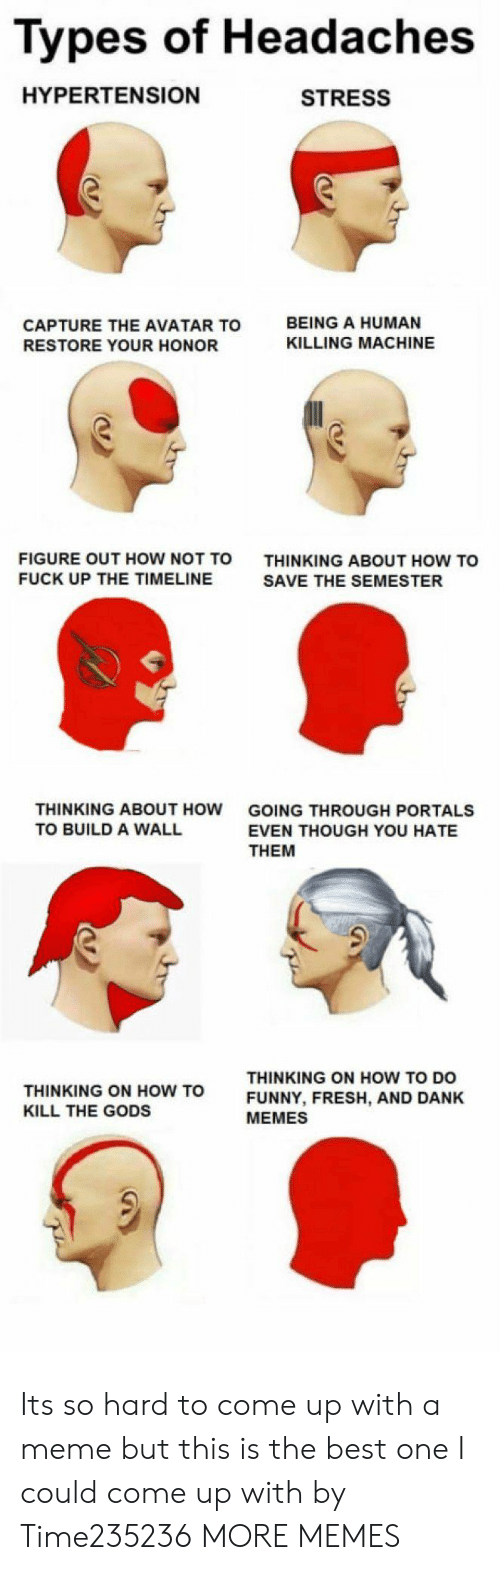 Dank, Fresh, and Funny: Types of Headaches  HYPERTENSION  STRESS  CAPTURE THE AVATAR TO  RESTORE YOUR HONOR  BEING A HUMAN  KILLING MACHINE  FIGURE OUT HOW NOT TO  FUCK UP THE TIMELINE  THINKING ABOUT HOW TO  SAVE THE SEMESTER  THINKING ABOUT HOW  TO BUILD A WALL  GOING THROUGH PORTALS  EVEN THOUGH YOU HATE  THEM  THINKING ON HOW TO  KILL THE GODS  THINKING ON HOW TO DO  FUNNY, FRESH, AND DANK  MEMES Its so hard to come up with a meme but this is the best one I could come up with by Time235236 MORE MEMES